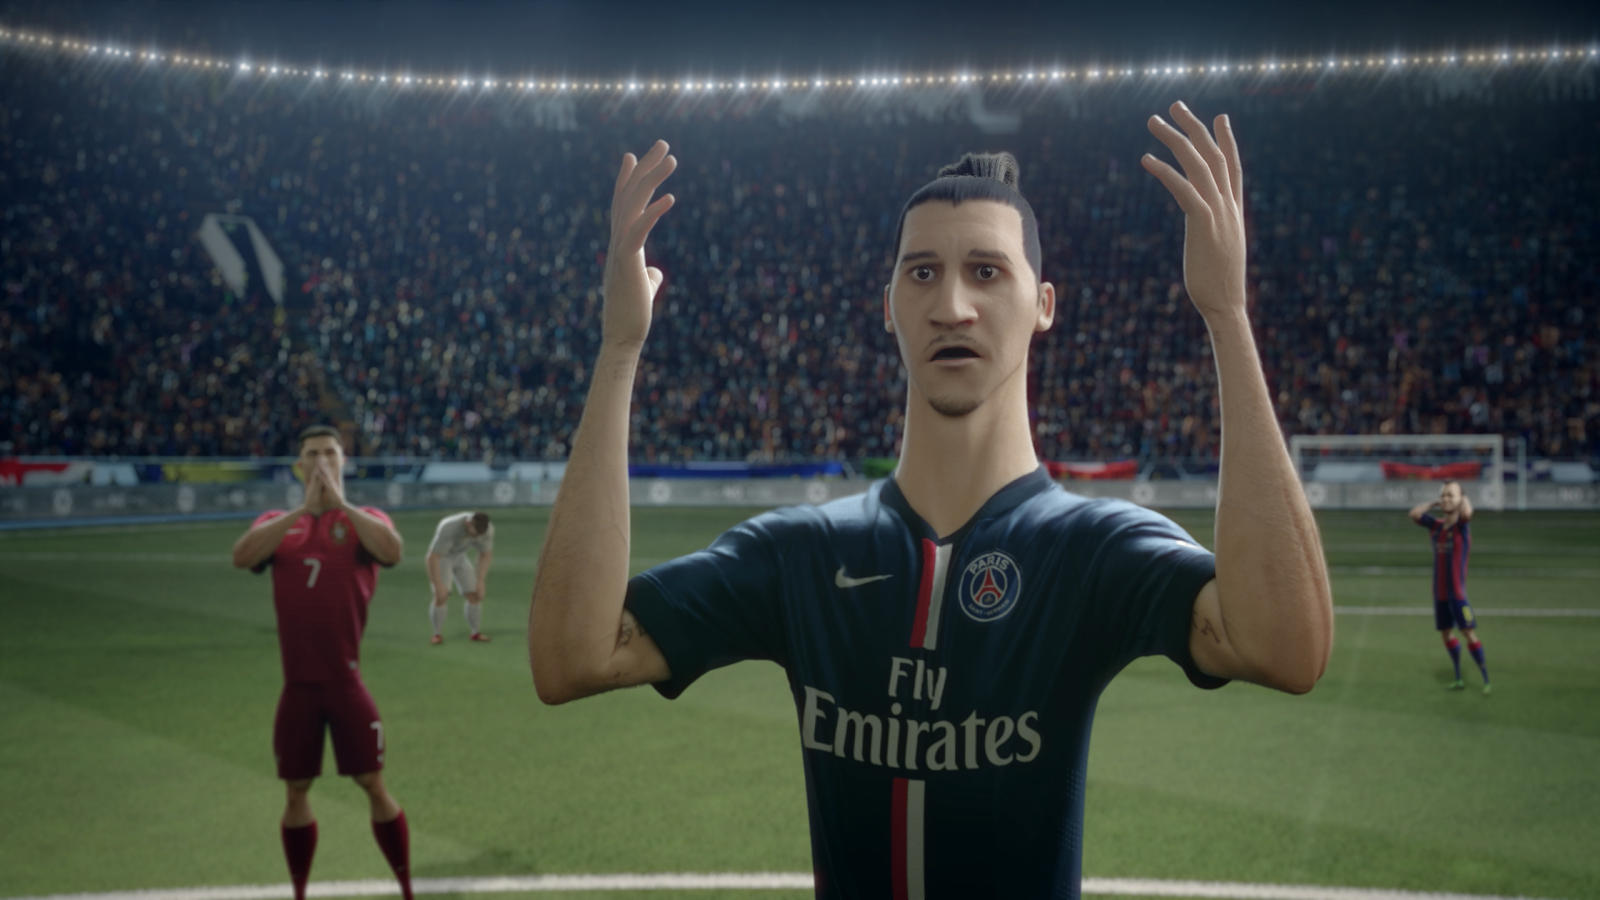 Zlatan Ibrahimovic, Cristiano Ronaldo and Andres Iniesta  star in The Last Game by Nike Football